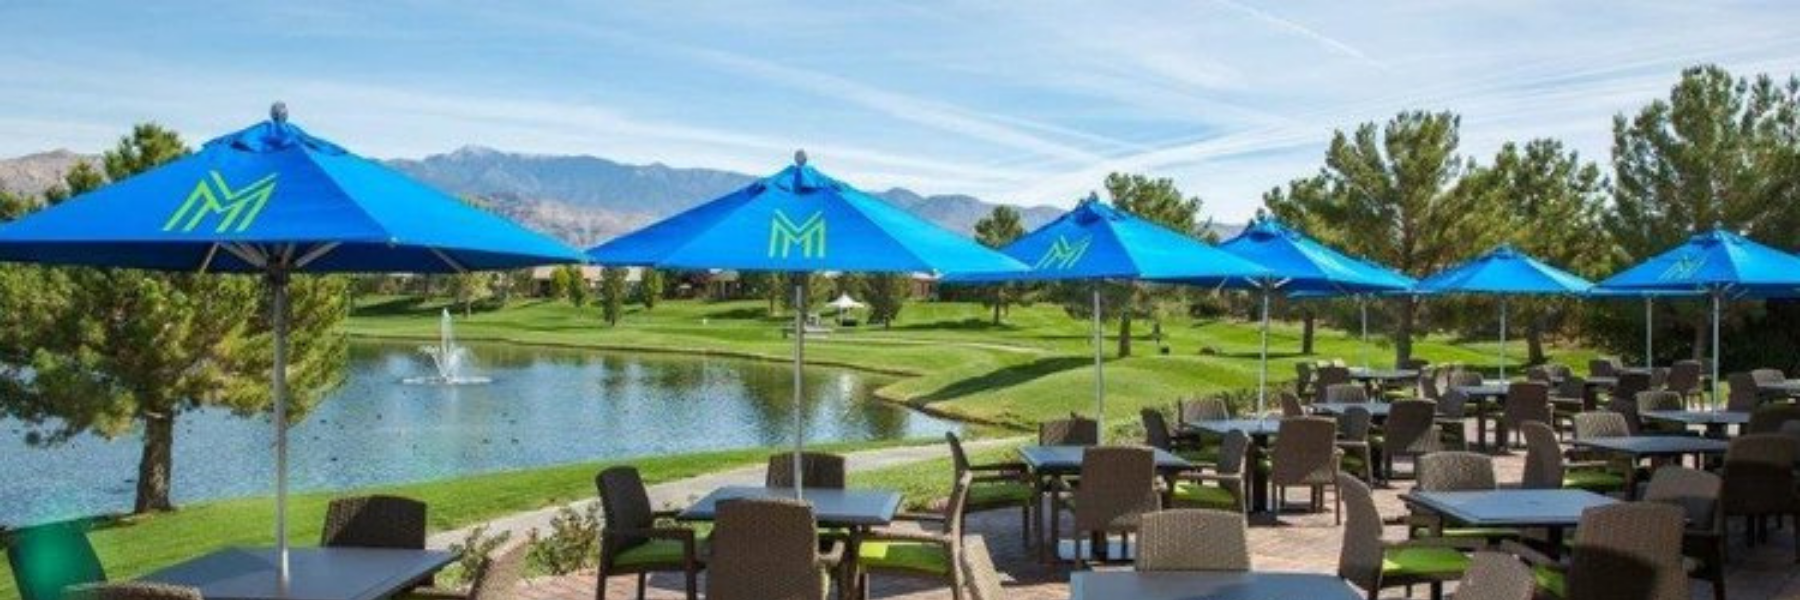 <p>Parasols Coral – Aluminium Lightweight Branded Centre Pole Terrace Shade Cover</p> <p></p> <p>Premium, stylish, lightweight, and beautiful aluminium centre pole commercial & residential parasol offering the ideal shade solution providing comfort and protection from the environmental conditions be it blazing hot sunshine or pouring rain.</p> <p></p> <p>Suitable for commercial settings, but more suited to residential settings due to smaller and lightweight size enabling customers to experience a continental atmosphere</p>